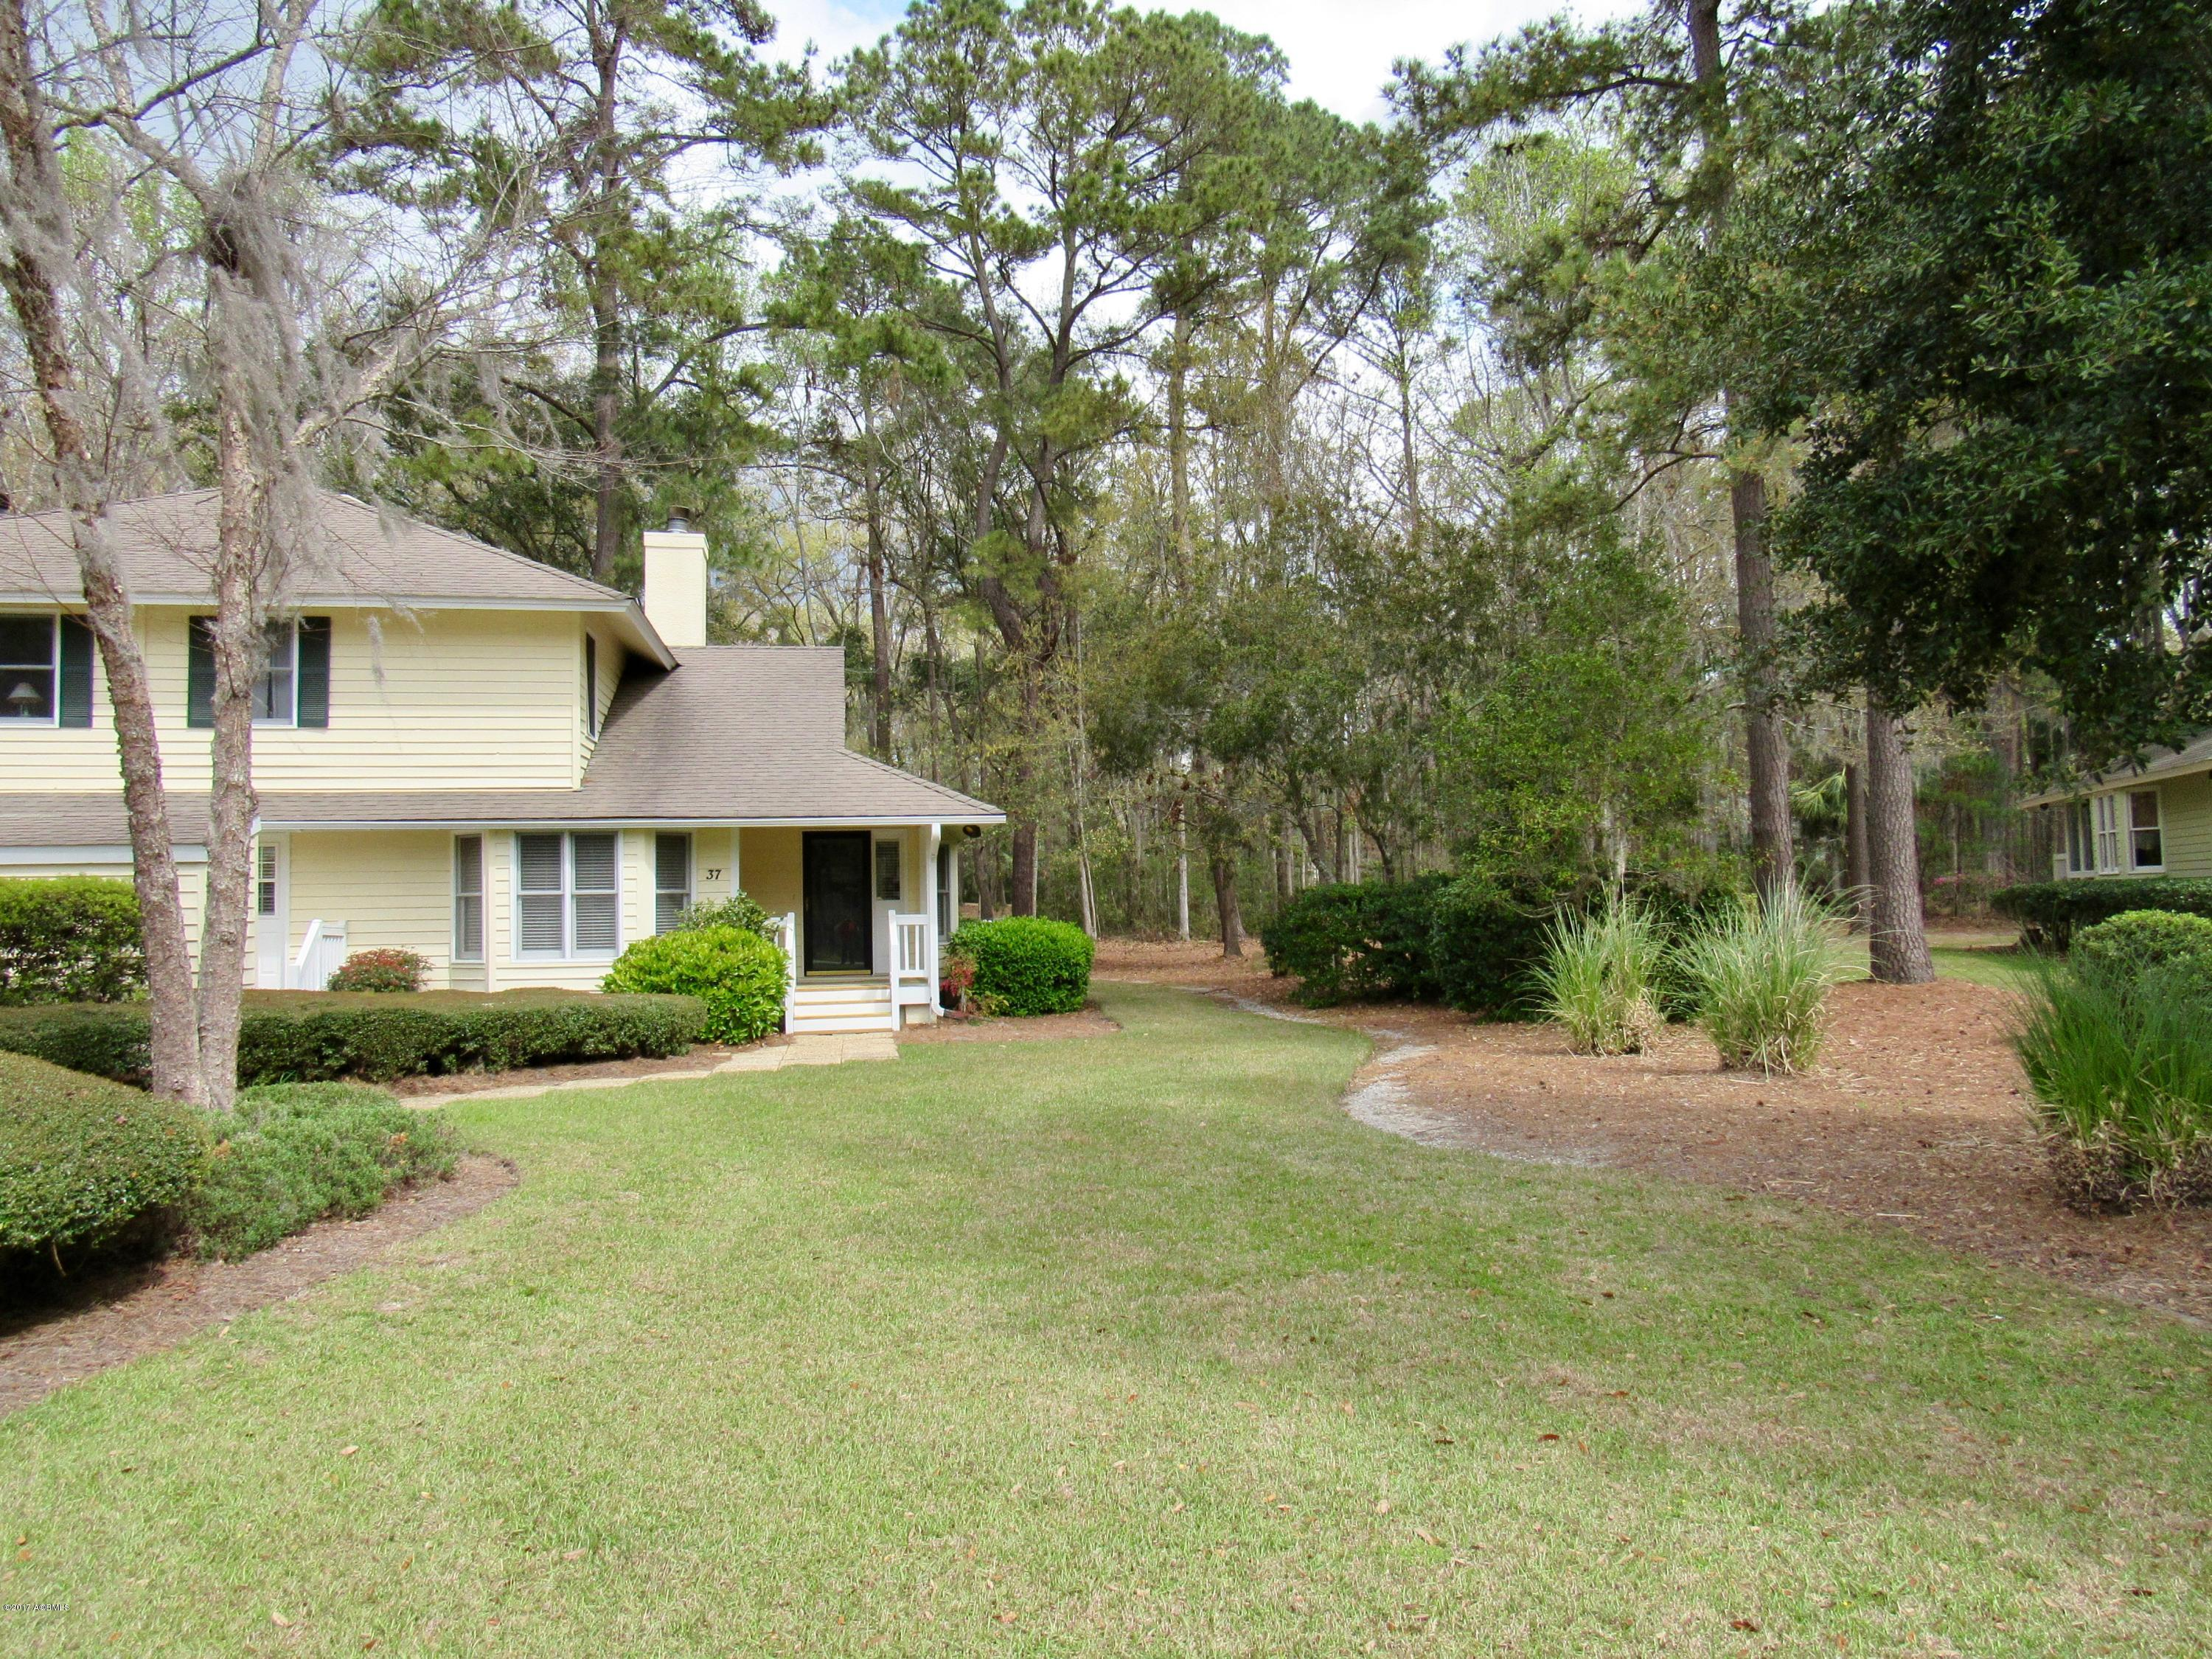 Photo of 37 Heron Walk, Okatie, SC 29909